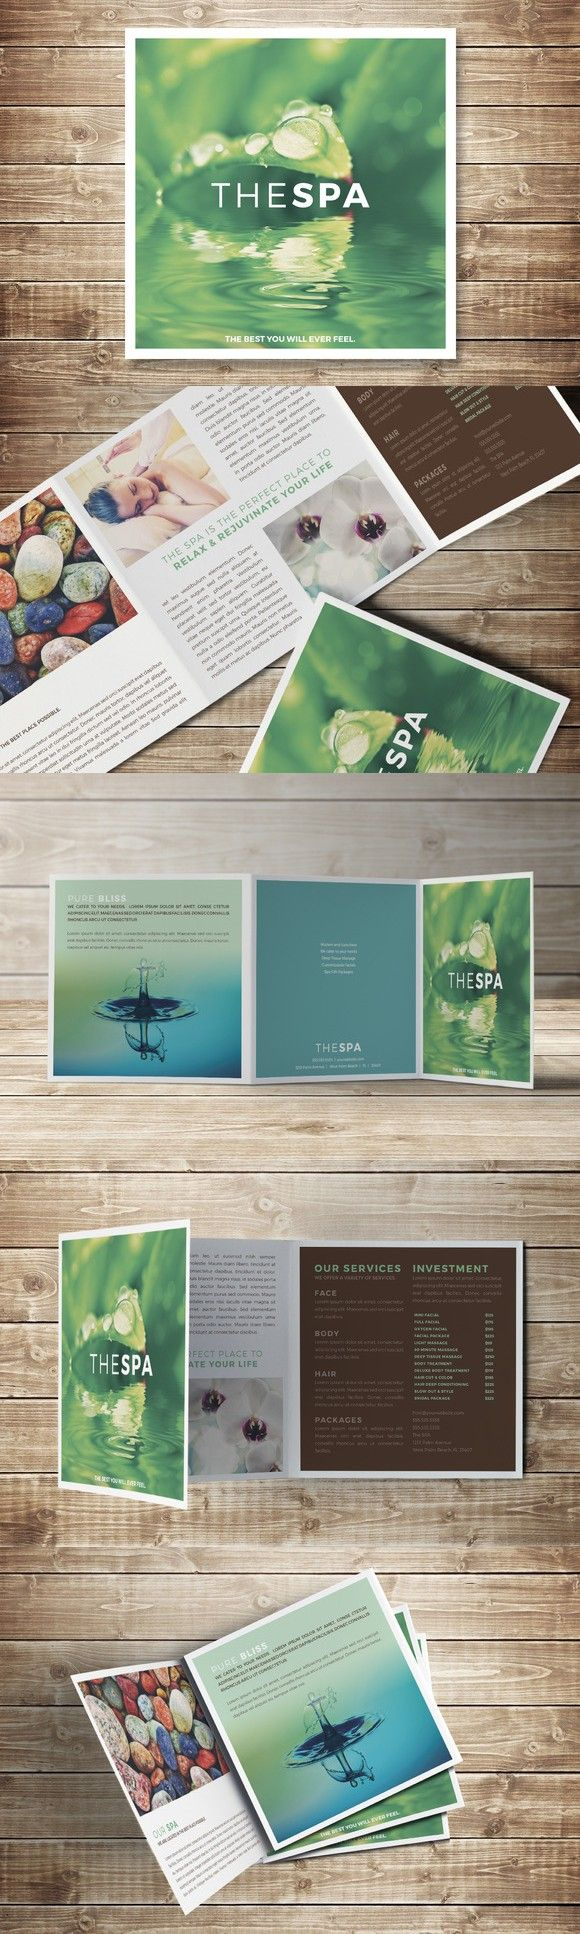 The Spa Trifold Square Brochure